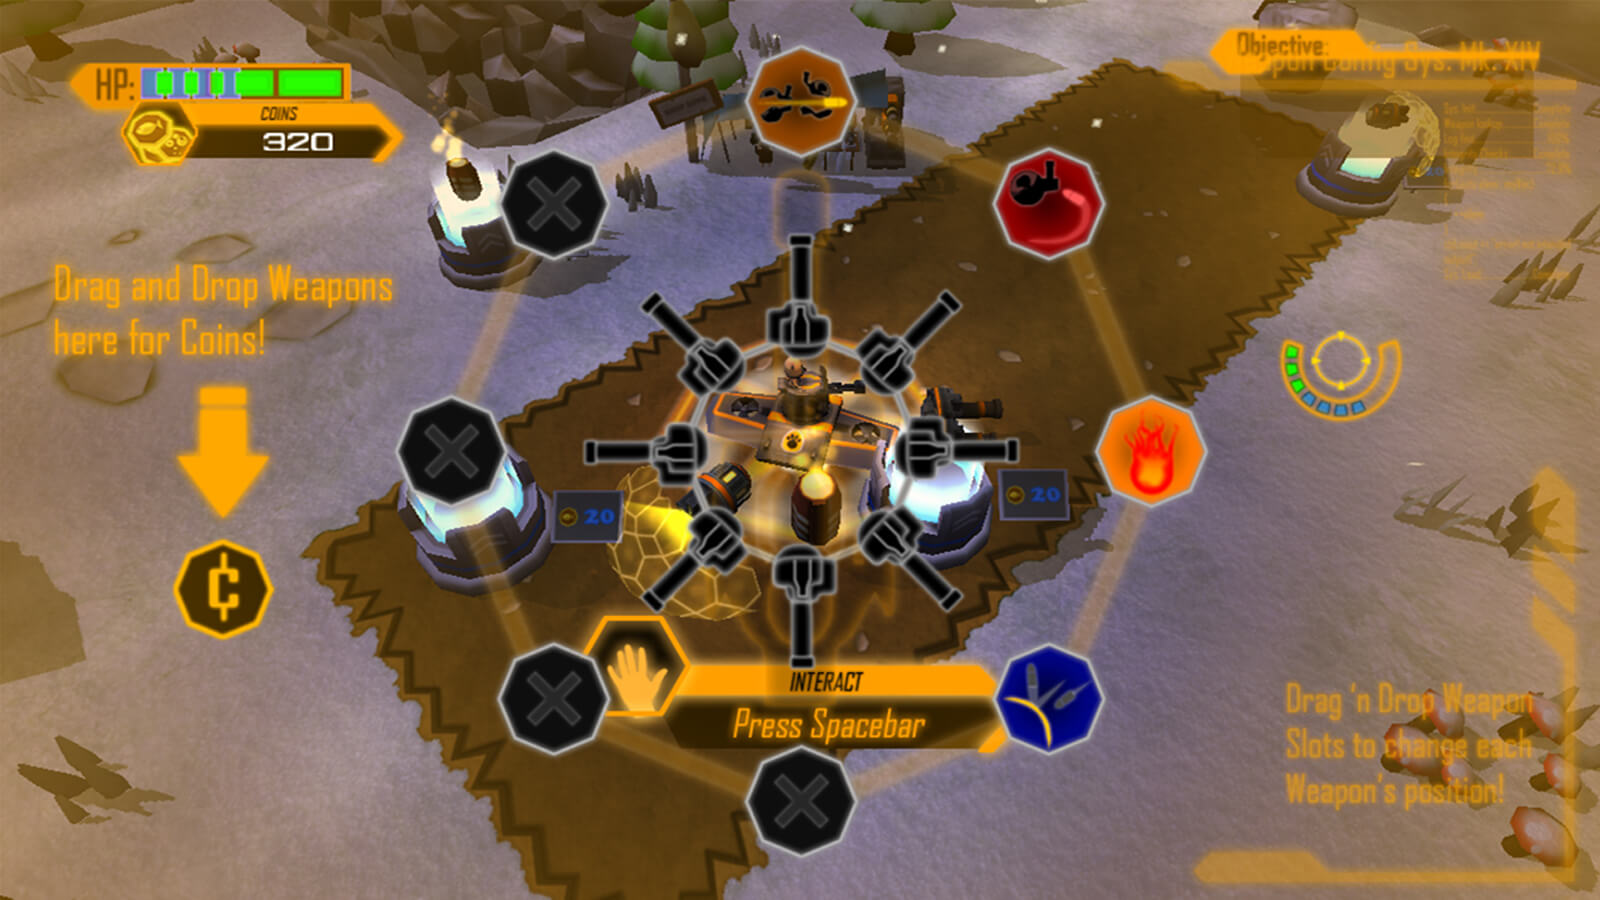 The player's tank surrounded by 360 degrees of weapons, showing slots for eight different types of guns and turrets